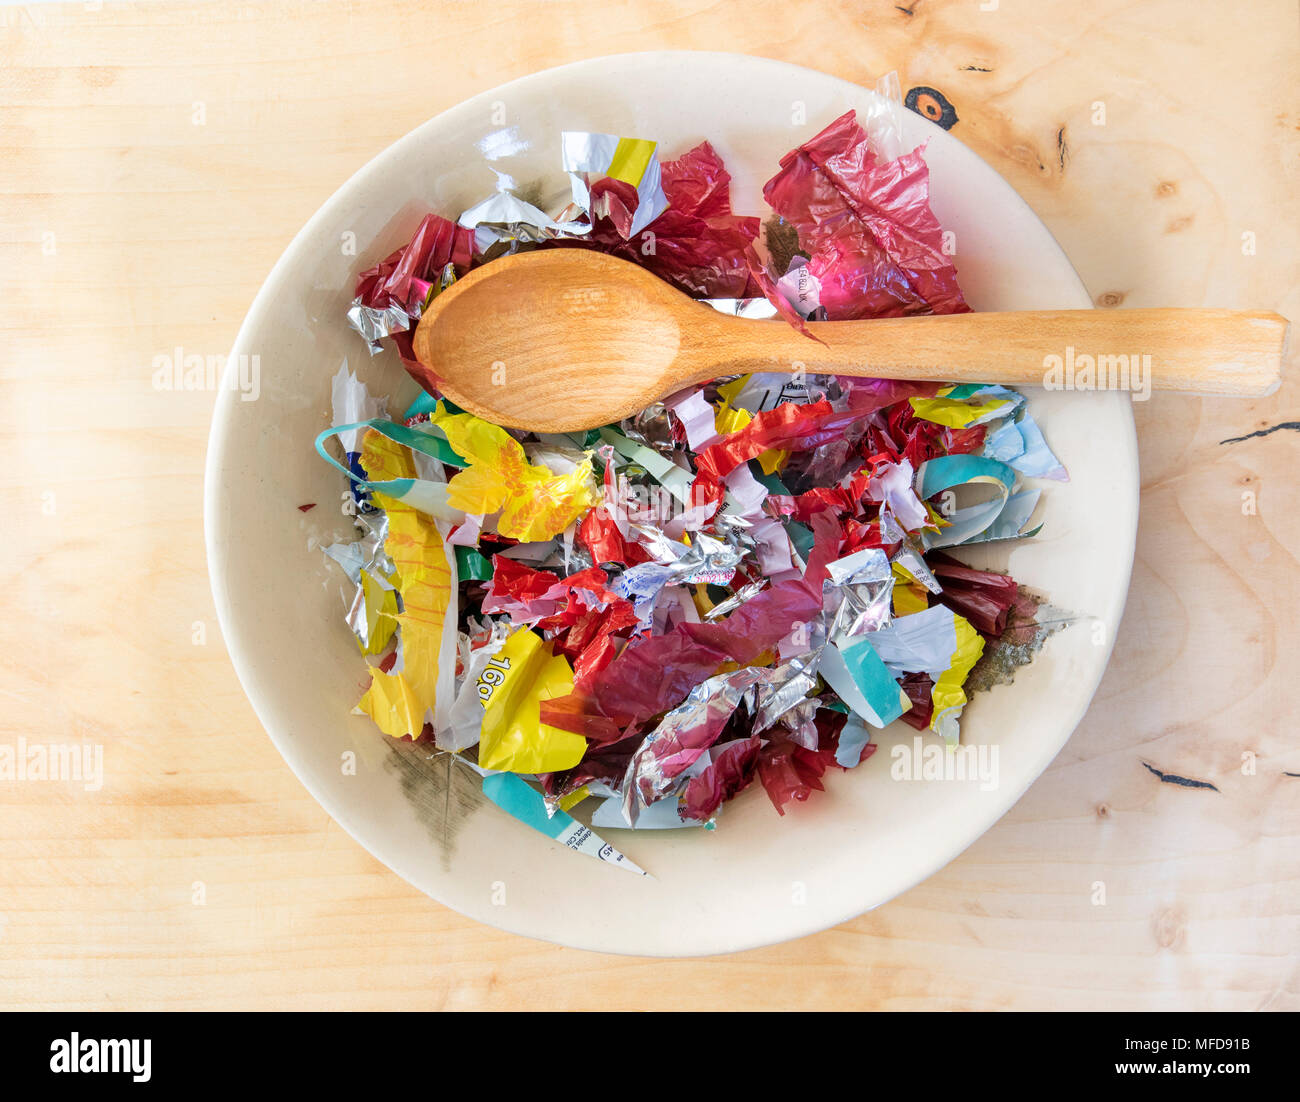 Meal Made of Single Use Plastics from a Supermarket - Stock Image